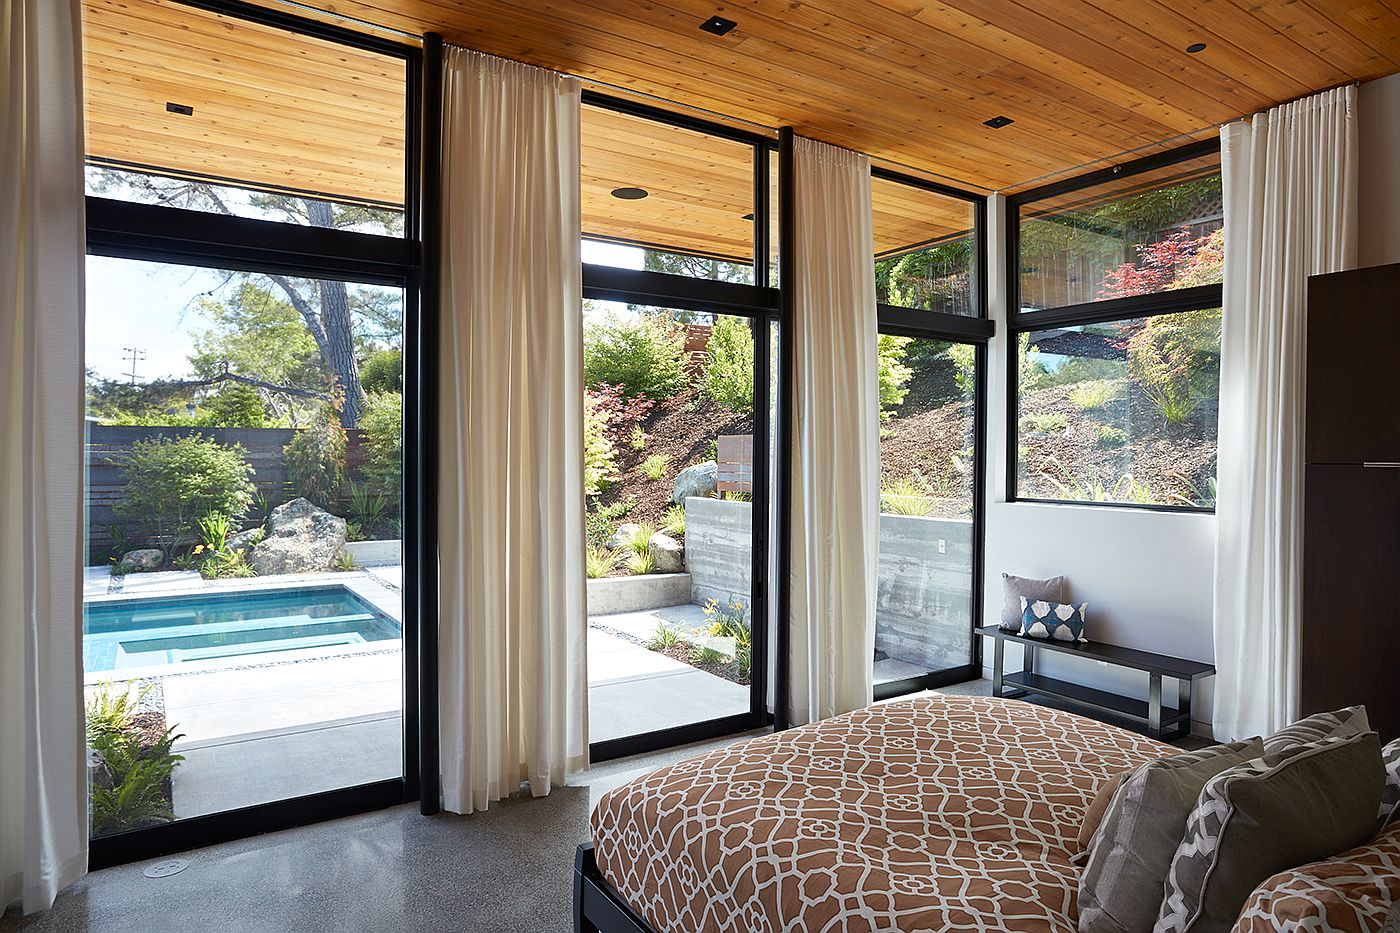 Tall drapes allow the homeowners to switch between privacy and pool view